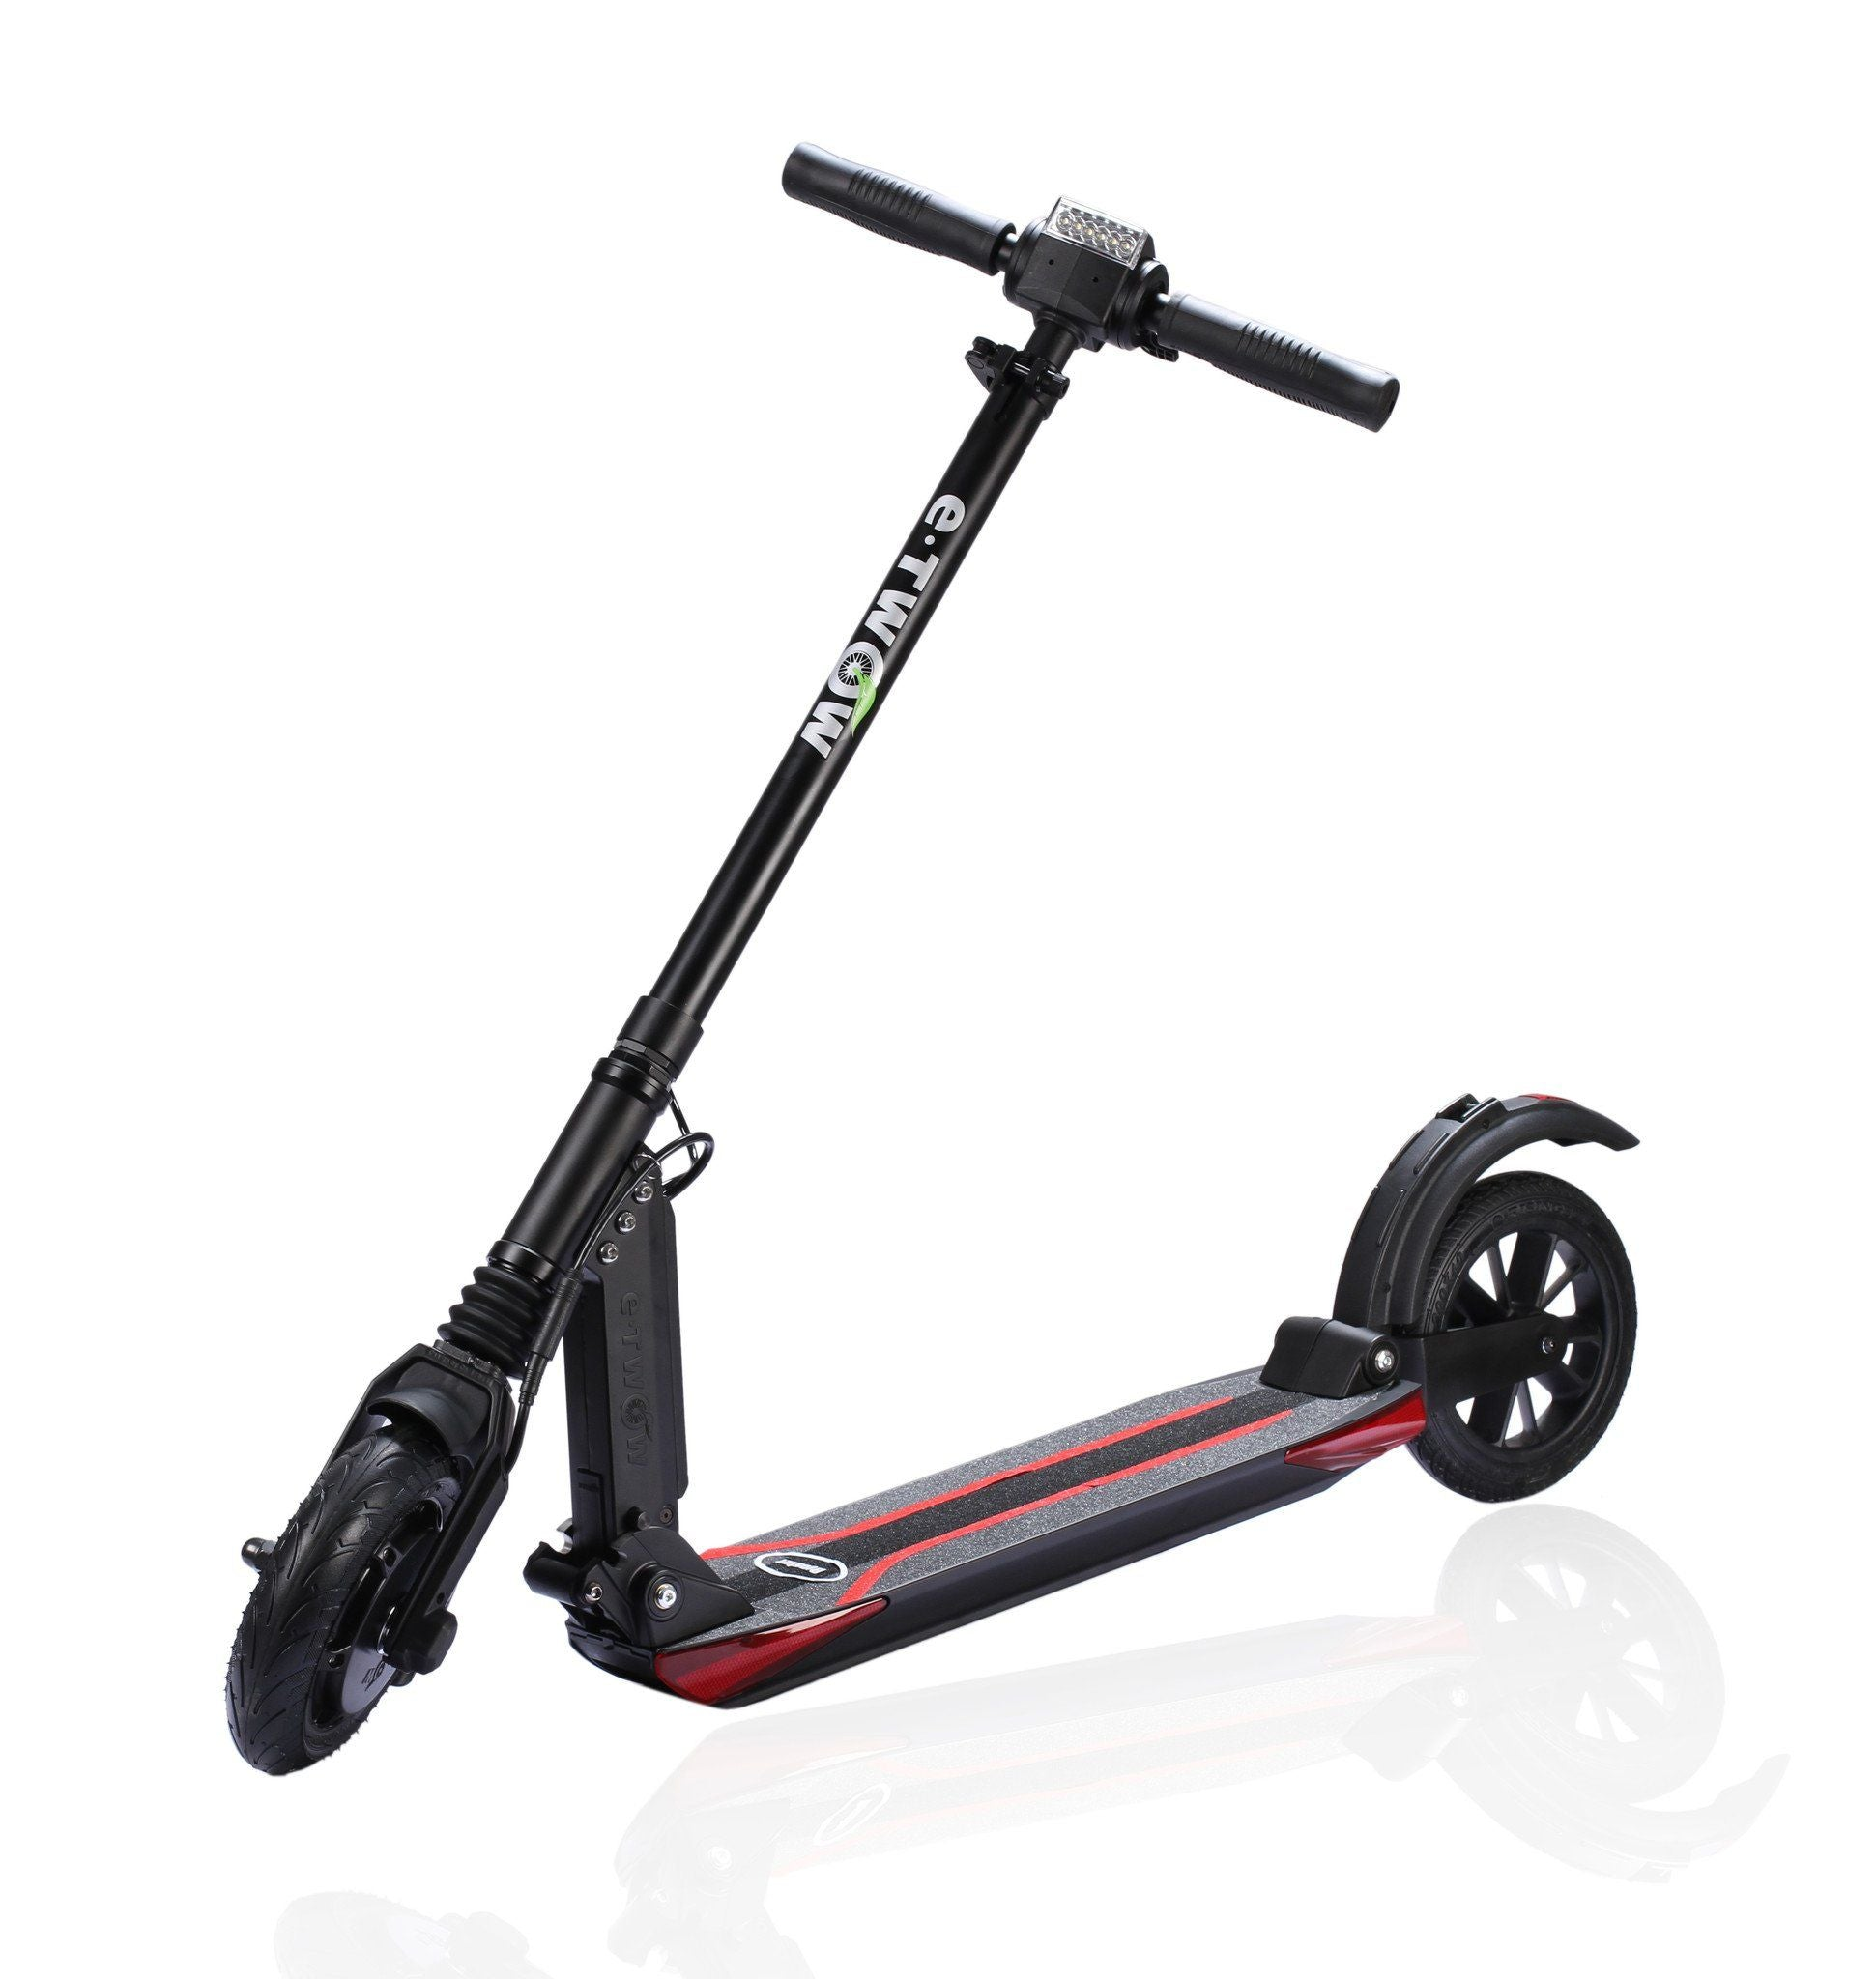 e-twow booster v2 electric scooter